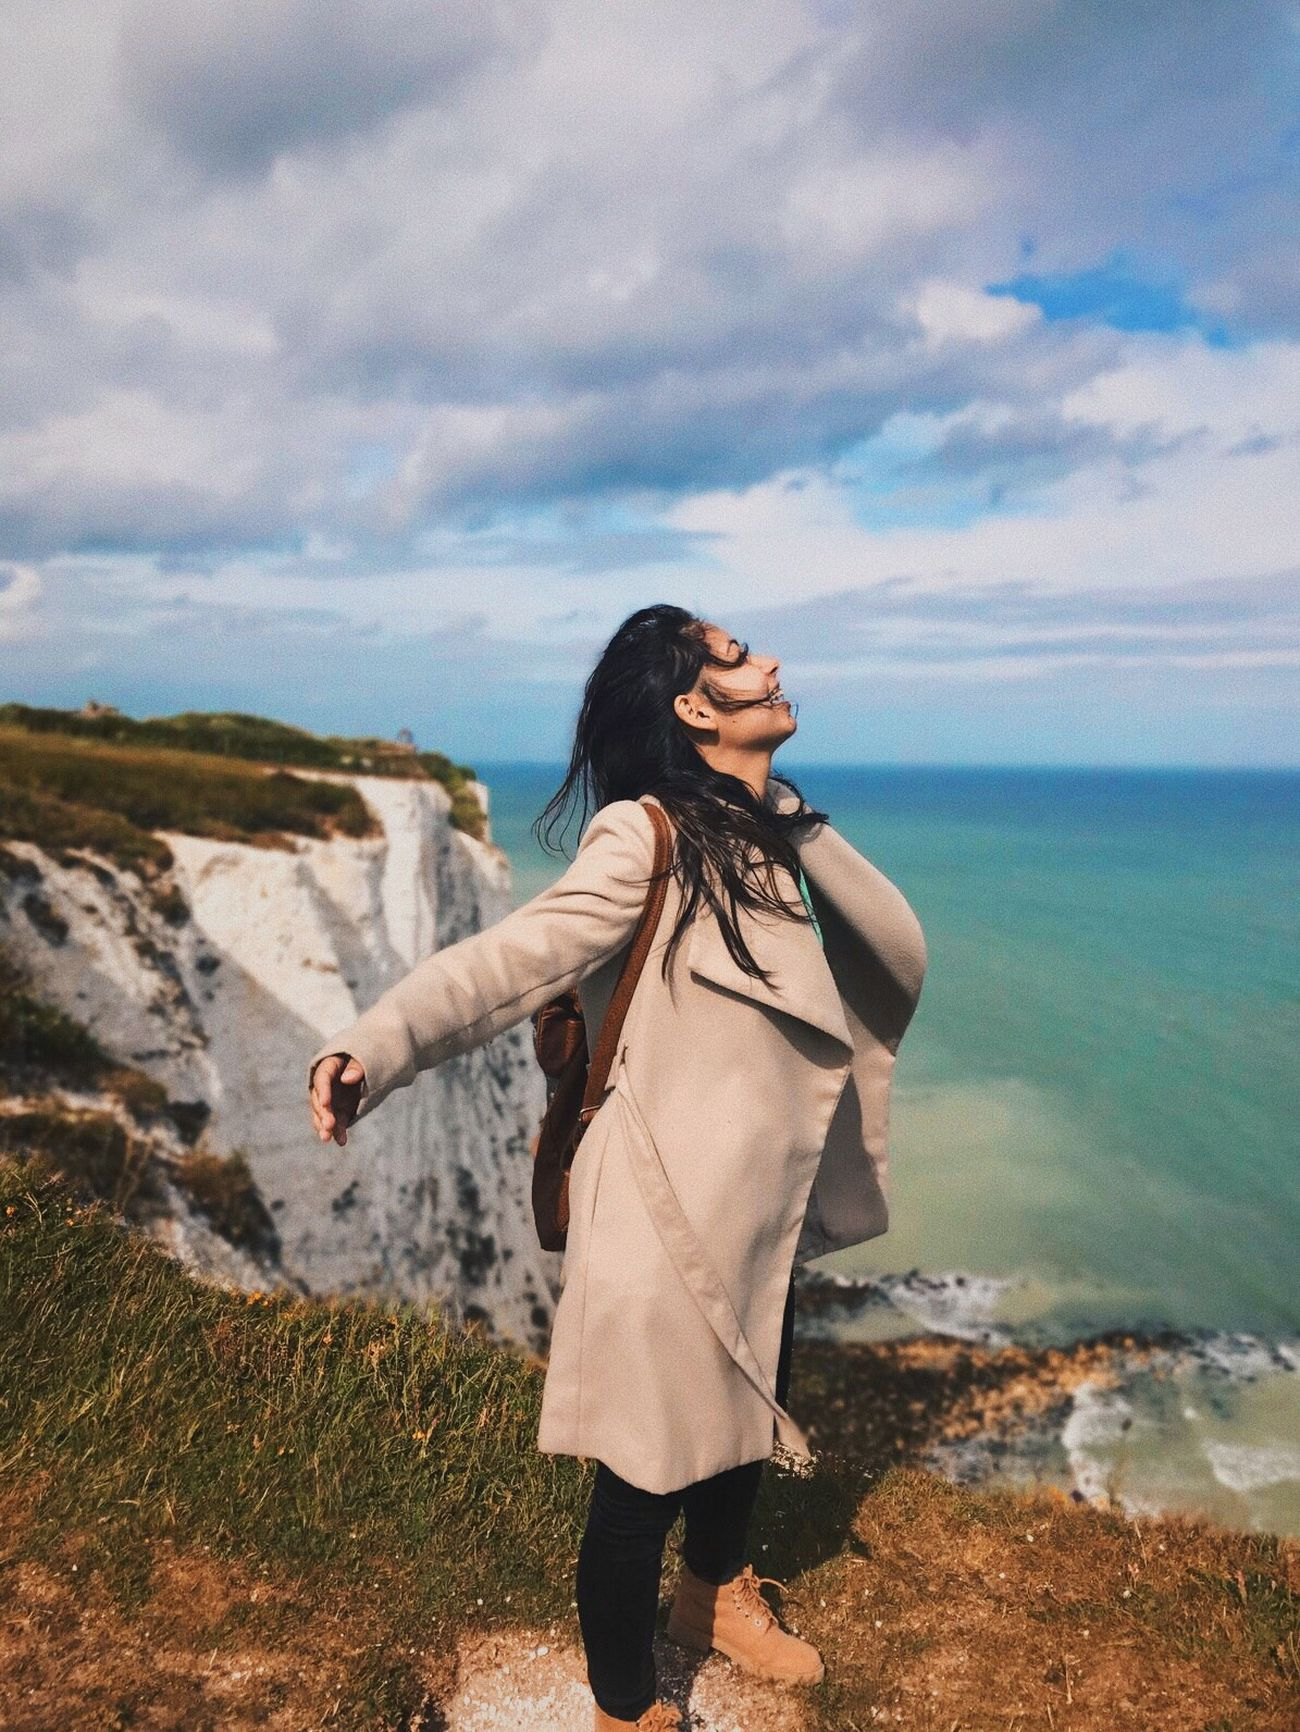 One Person Real People Nature Sky Cloud - Sky Leisure Activity Sea Outdoors Lifestyles Standing Water Beauty In Nature Young Adult Long Hair Scenics Day Full Length Young Women Horizon Over Water Women